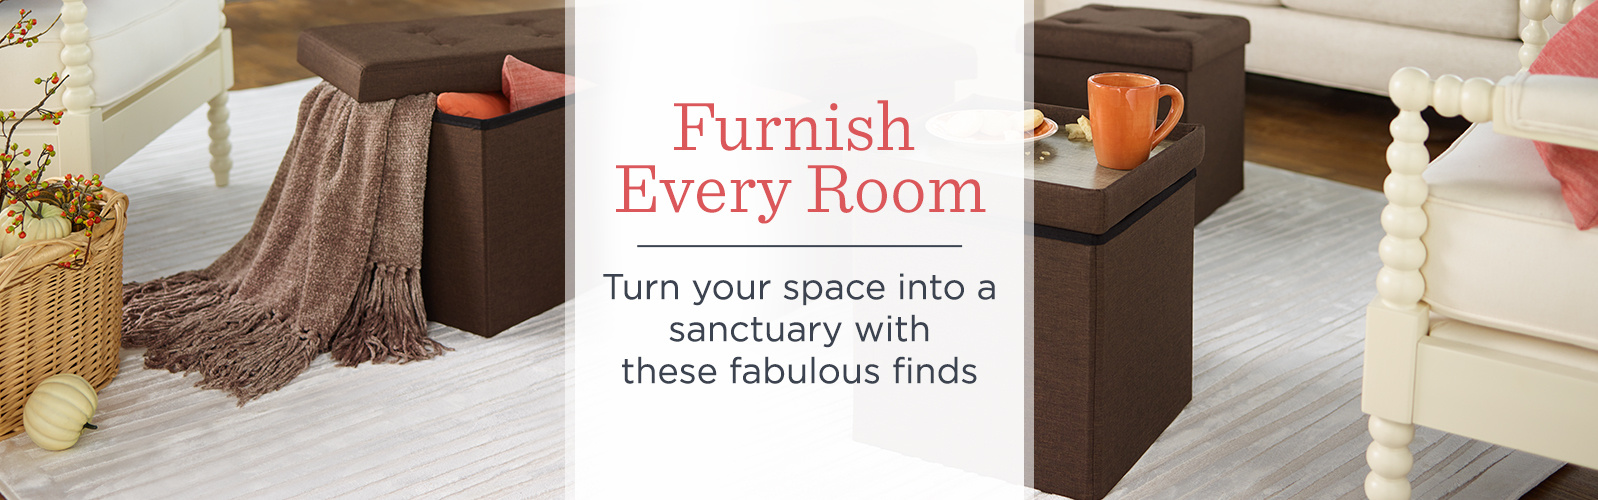 Furnish Every Room - Turn your space into a sanctuary with these fabulous finds